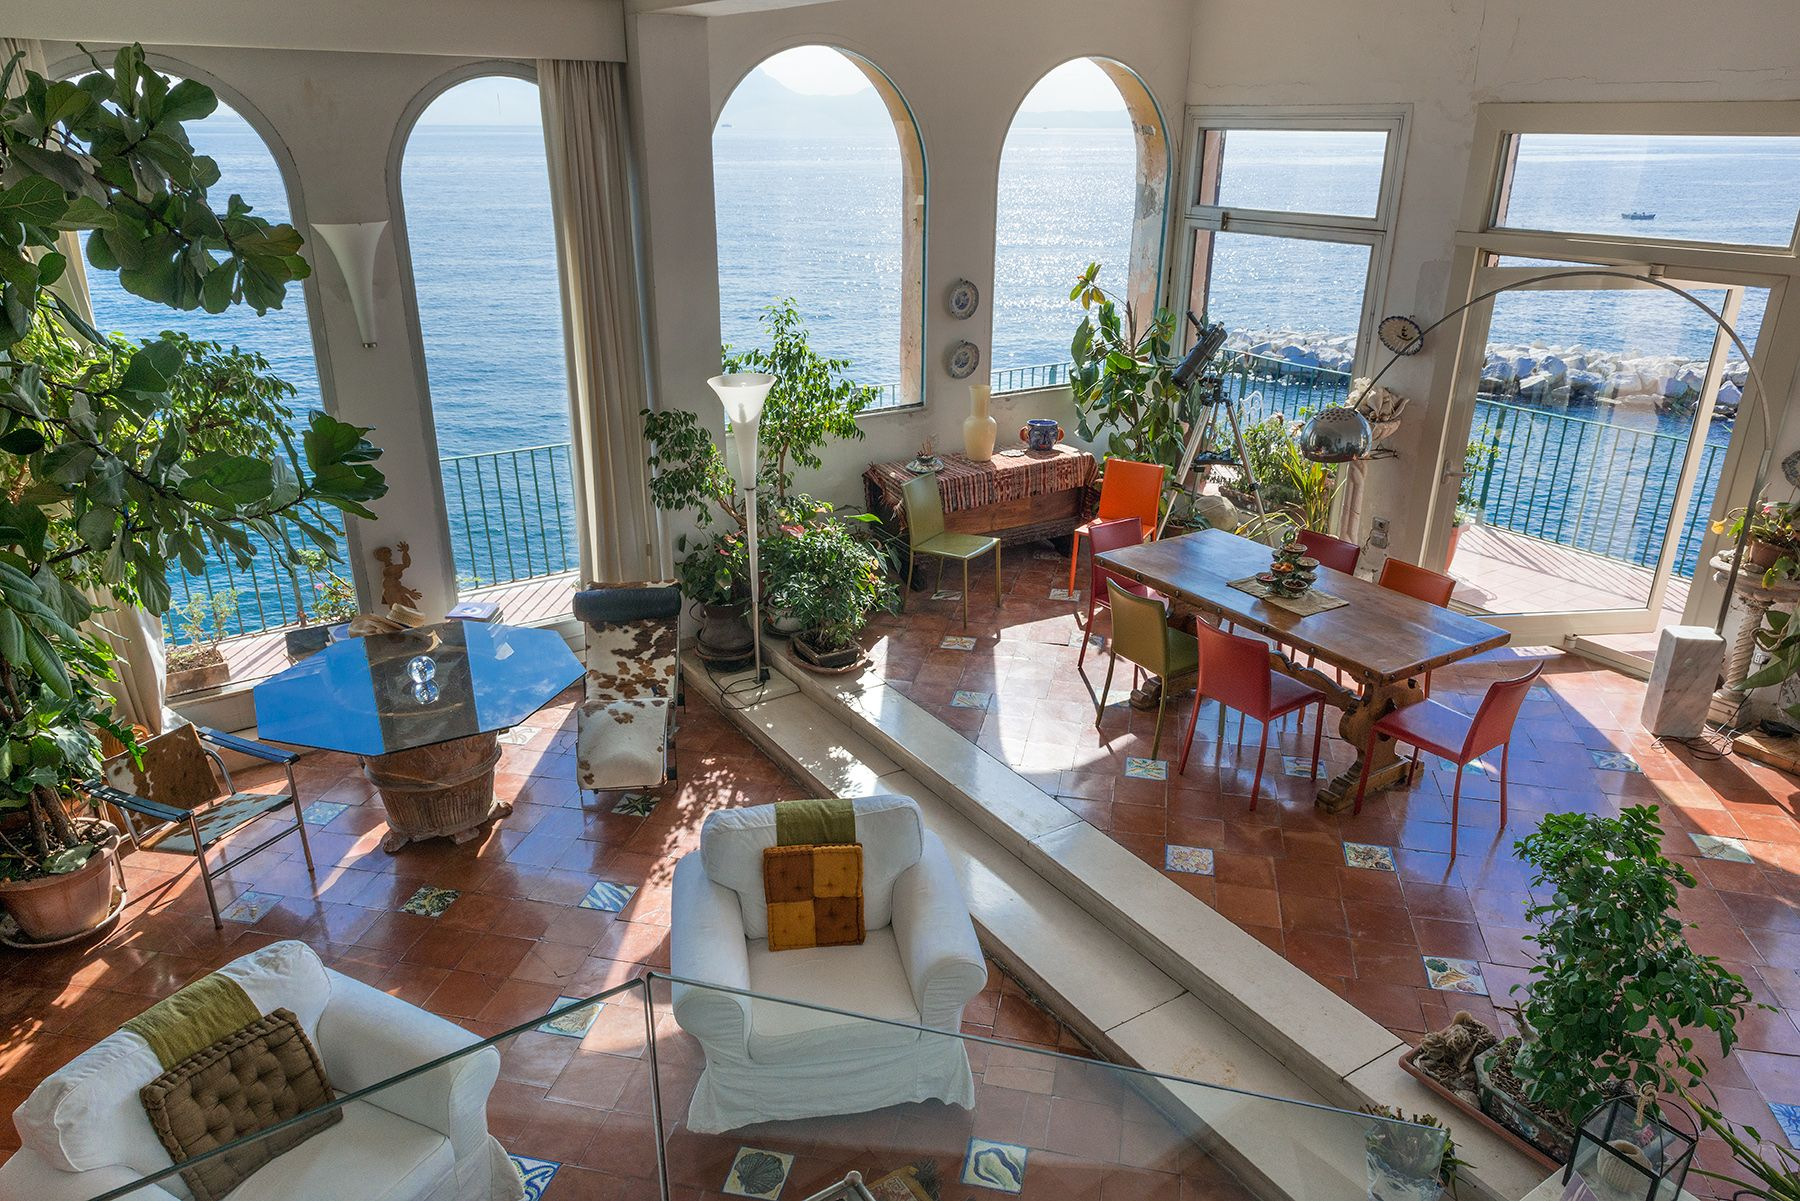 Apartments In Sorrento Italy For Sale - anunciosdelrecuerdo